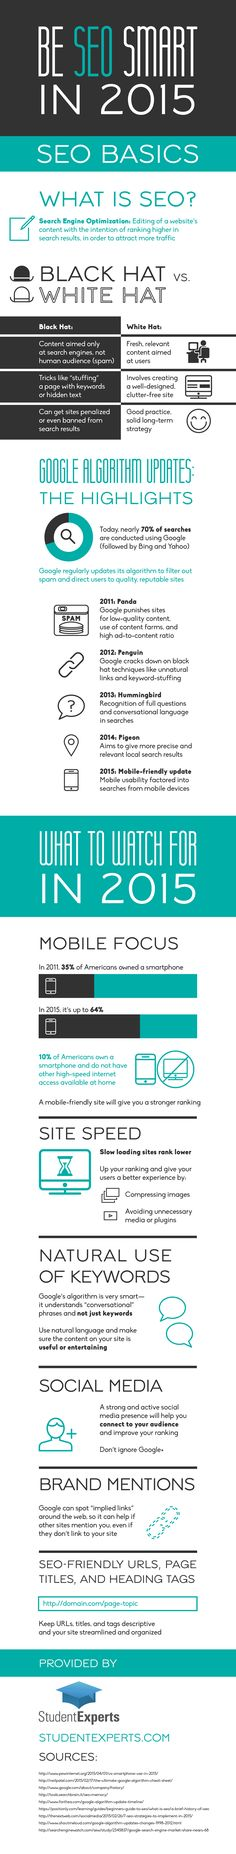 Be Smart in 2015 – How strong is your search engine ranking? If your site isn't mobile-friendly, fast-loading, and clutter-free, it might be weaker than you think. Check out this infographic for tips on how to keep your site optimized in Marketing Website, Marketing Tools, Internet Marketing, Online Marketing, Digital Marketing, Tourism Marketing, Media Marketing, Affiliate Marketing, Seo Basics